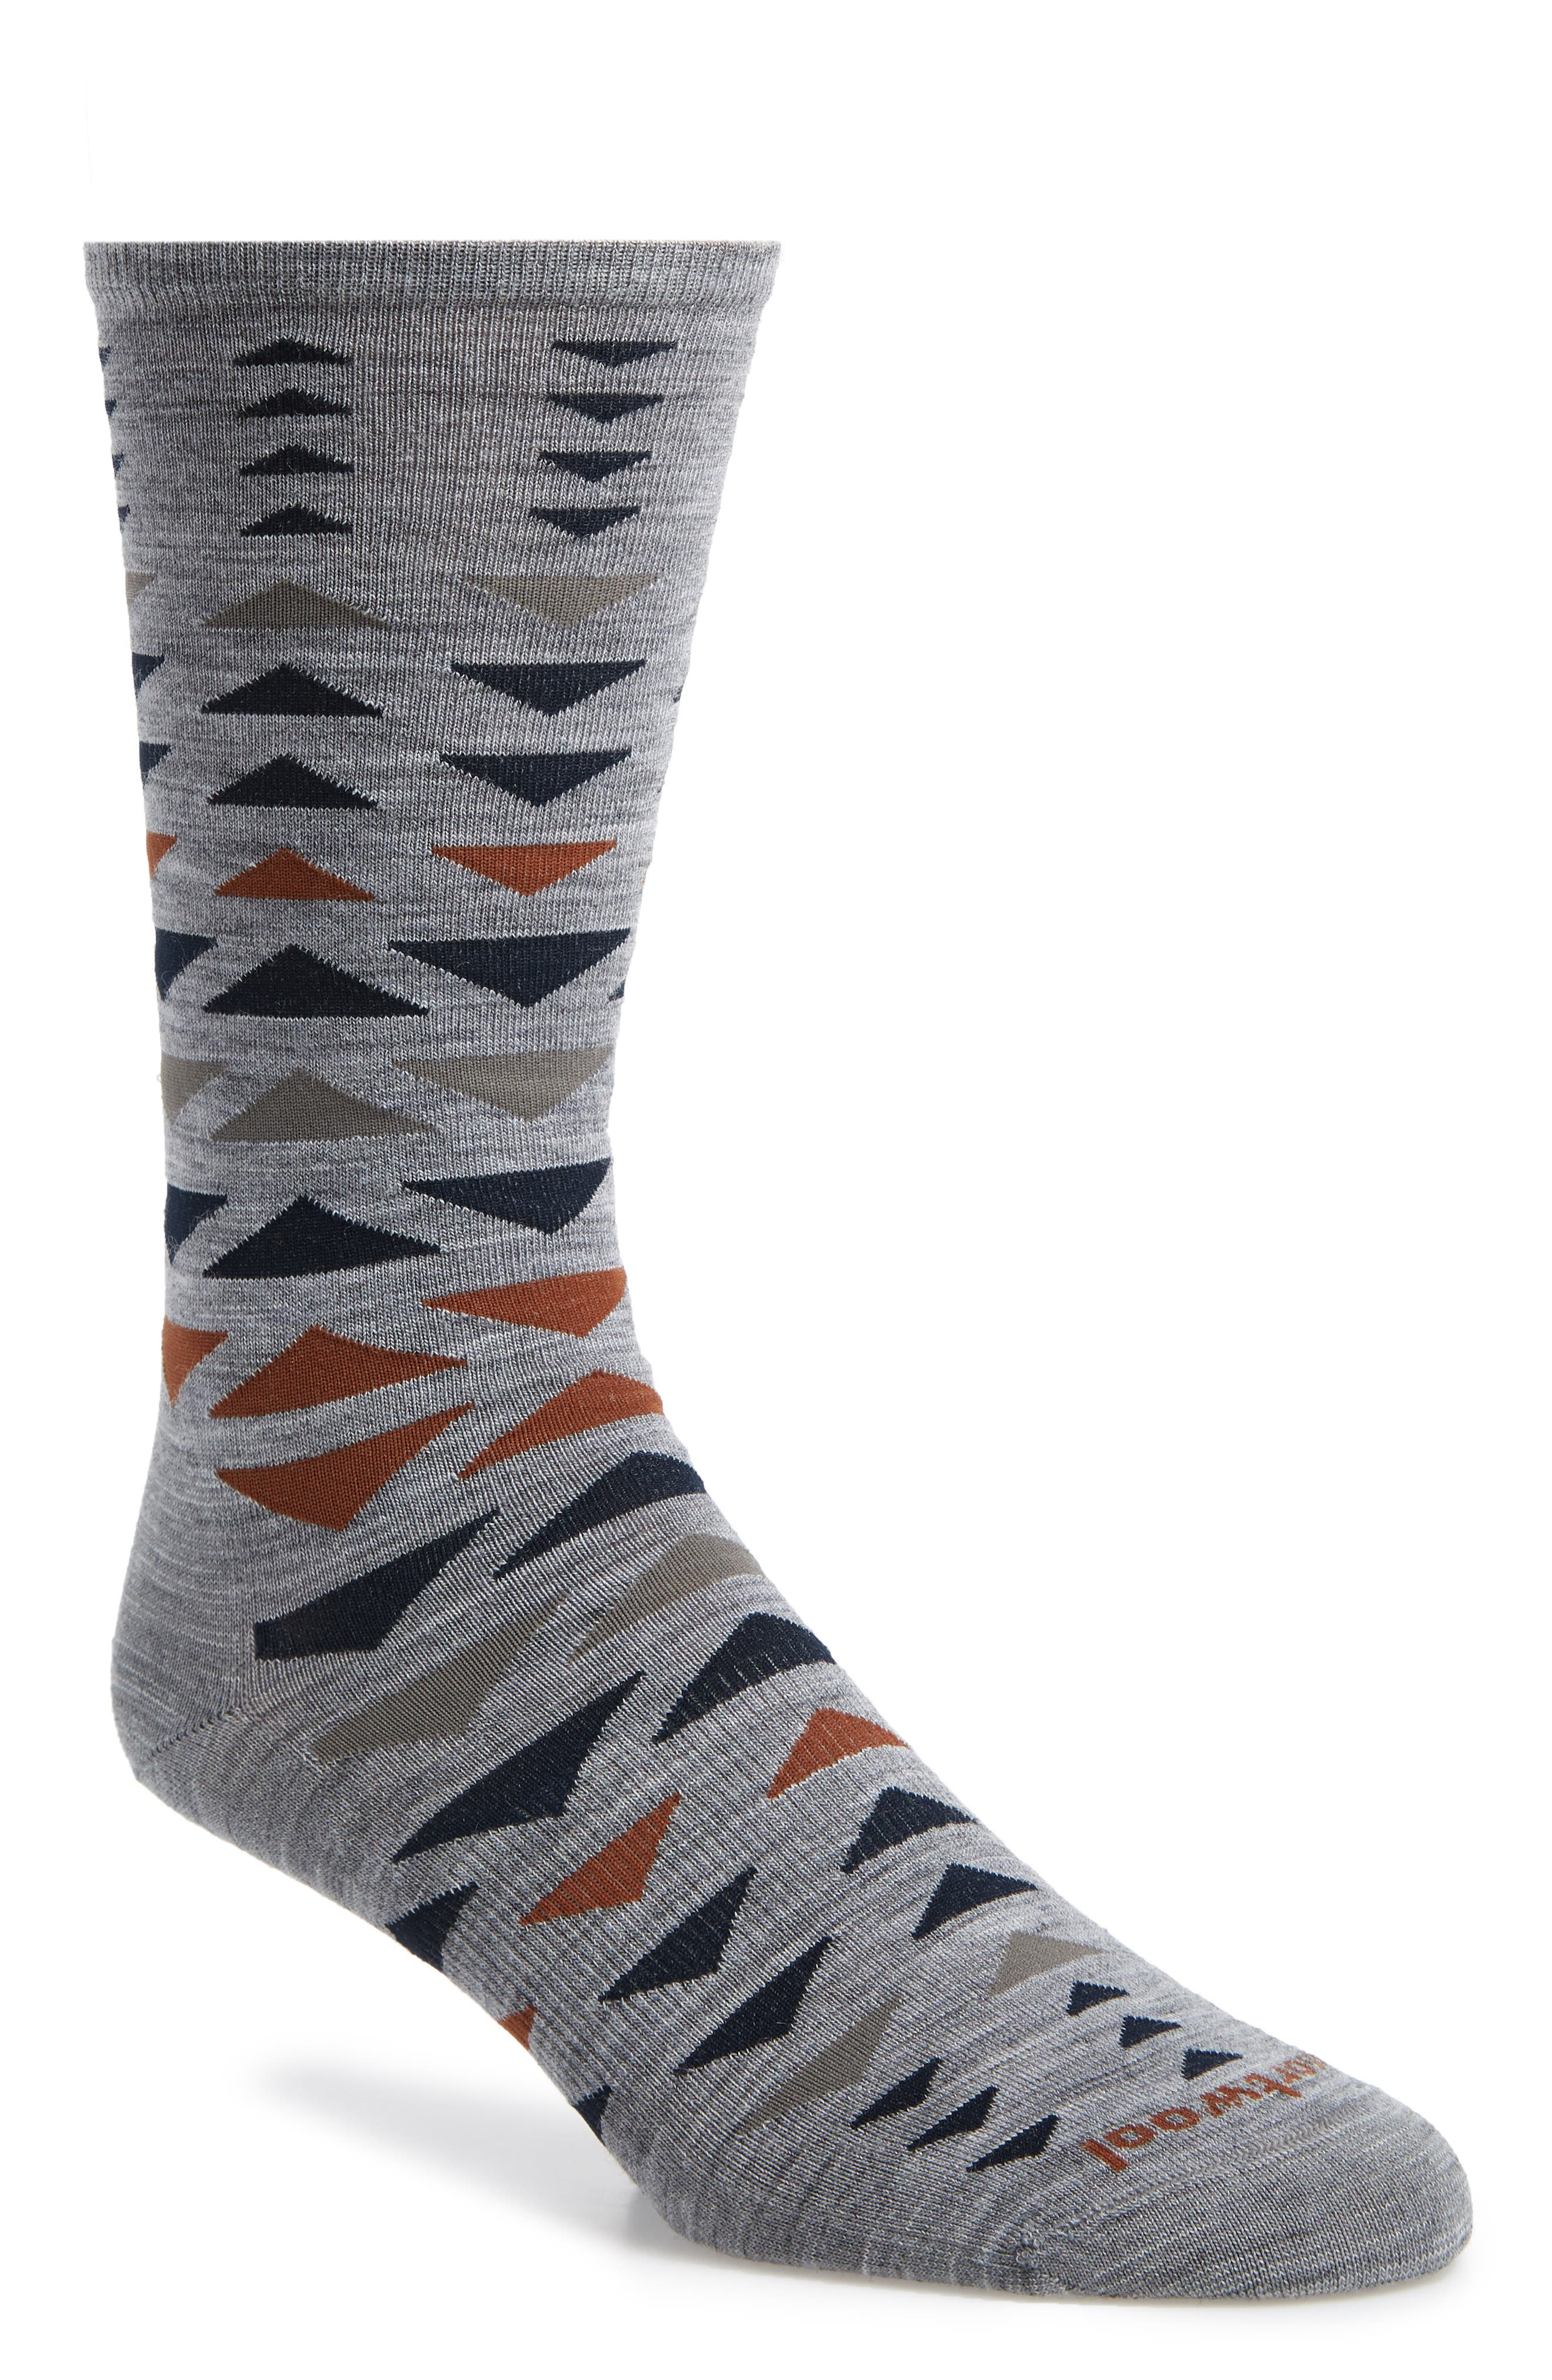 SMARTWOOL Burgee Geometric Socks, Main, color, LIGHT GREY